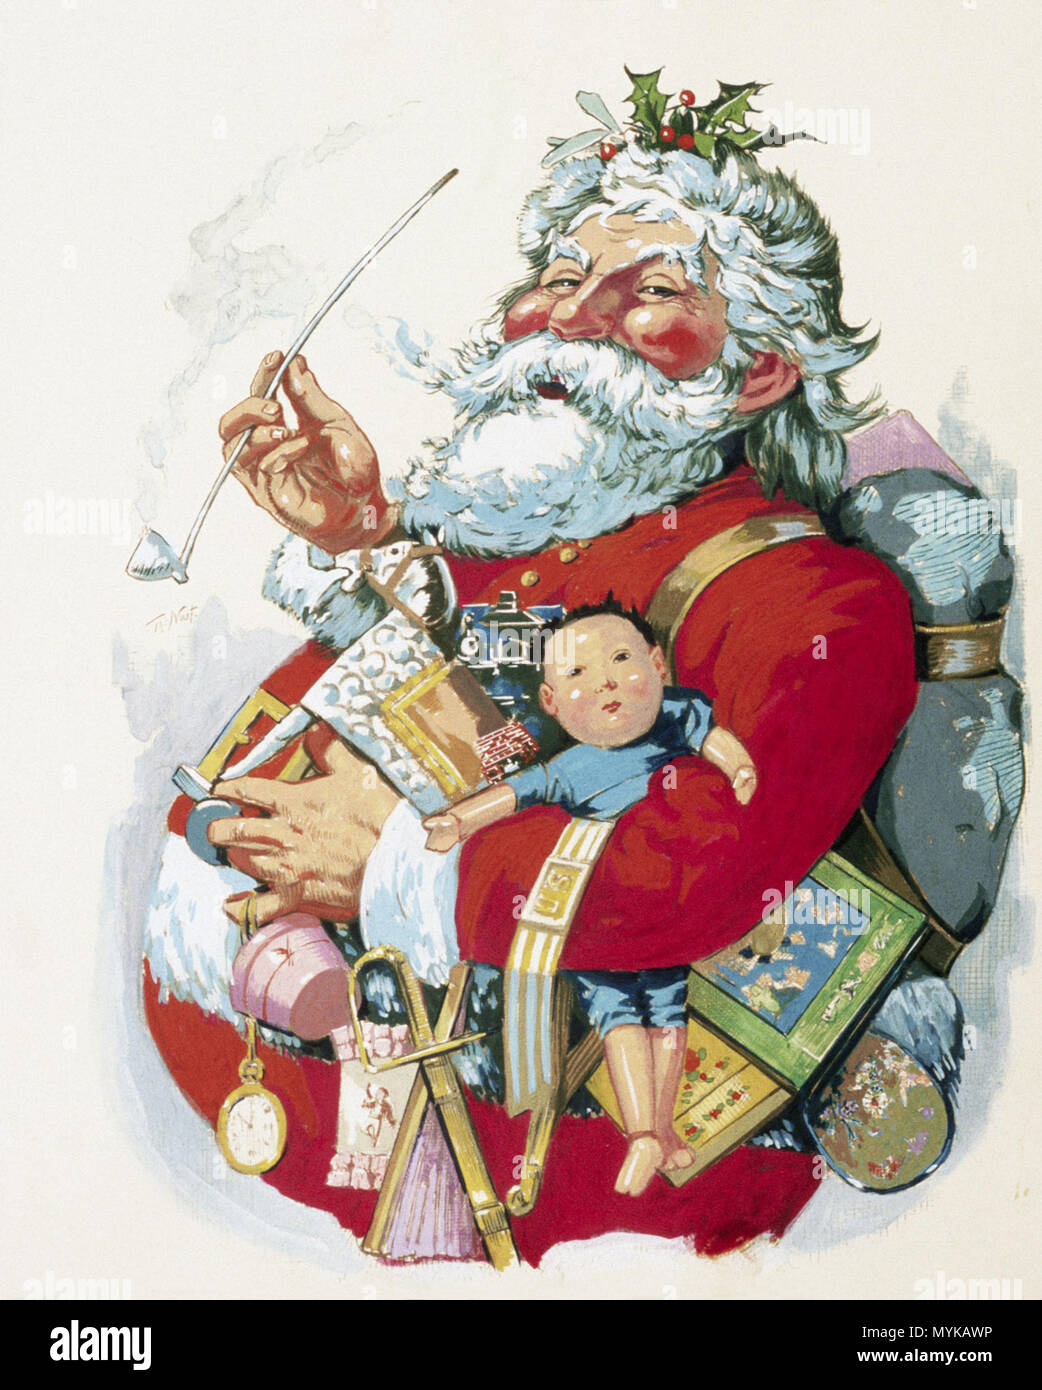 . Inglés: Merry Old Santa Claus de Thomas Nast . 1863. Thomas Nast 360 Merry Old Santa Claus de Thomas Nast Foto de stock